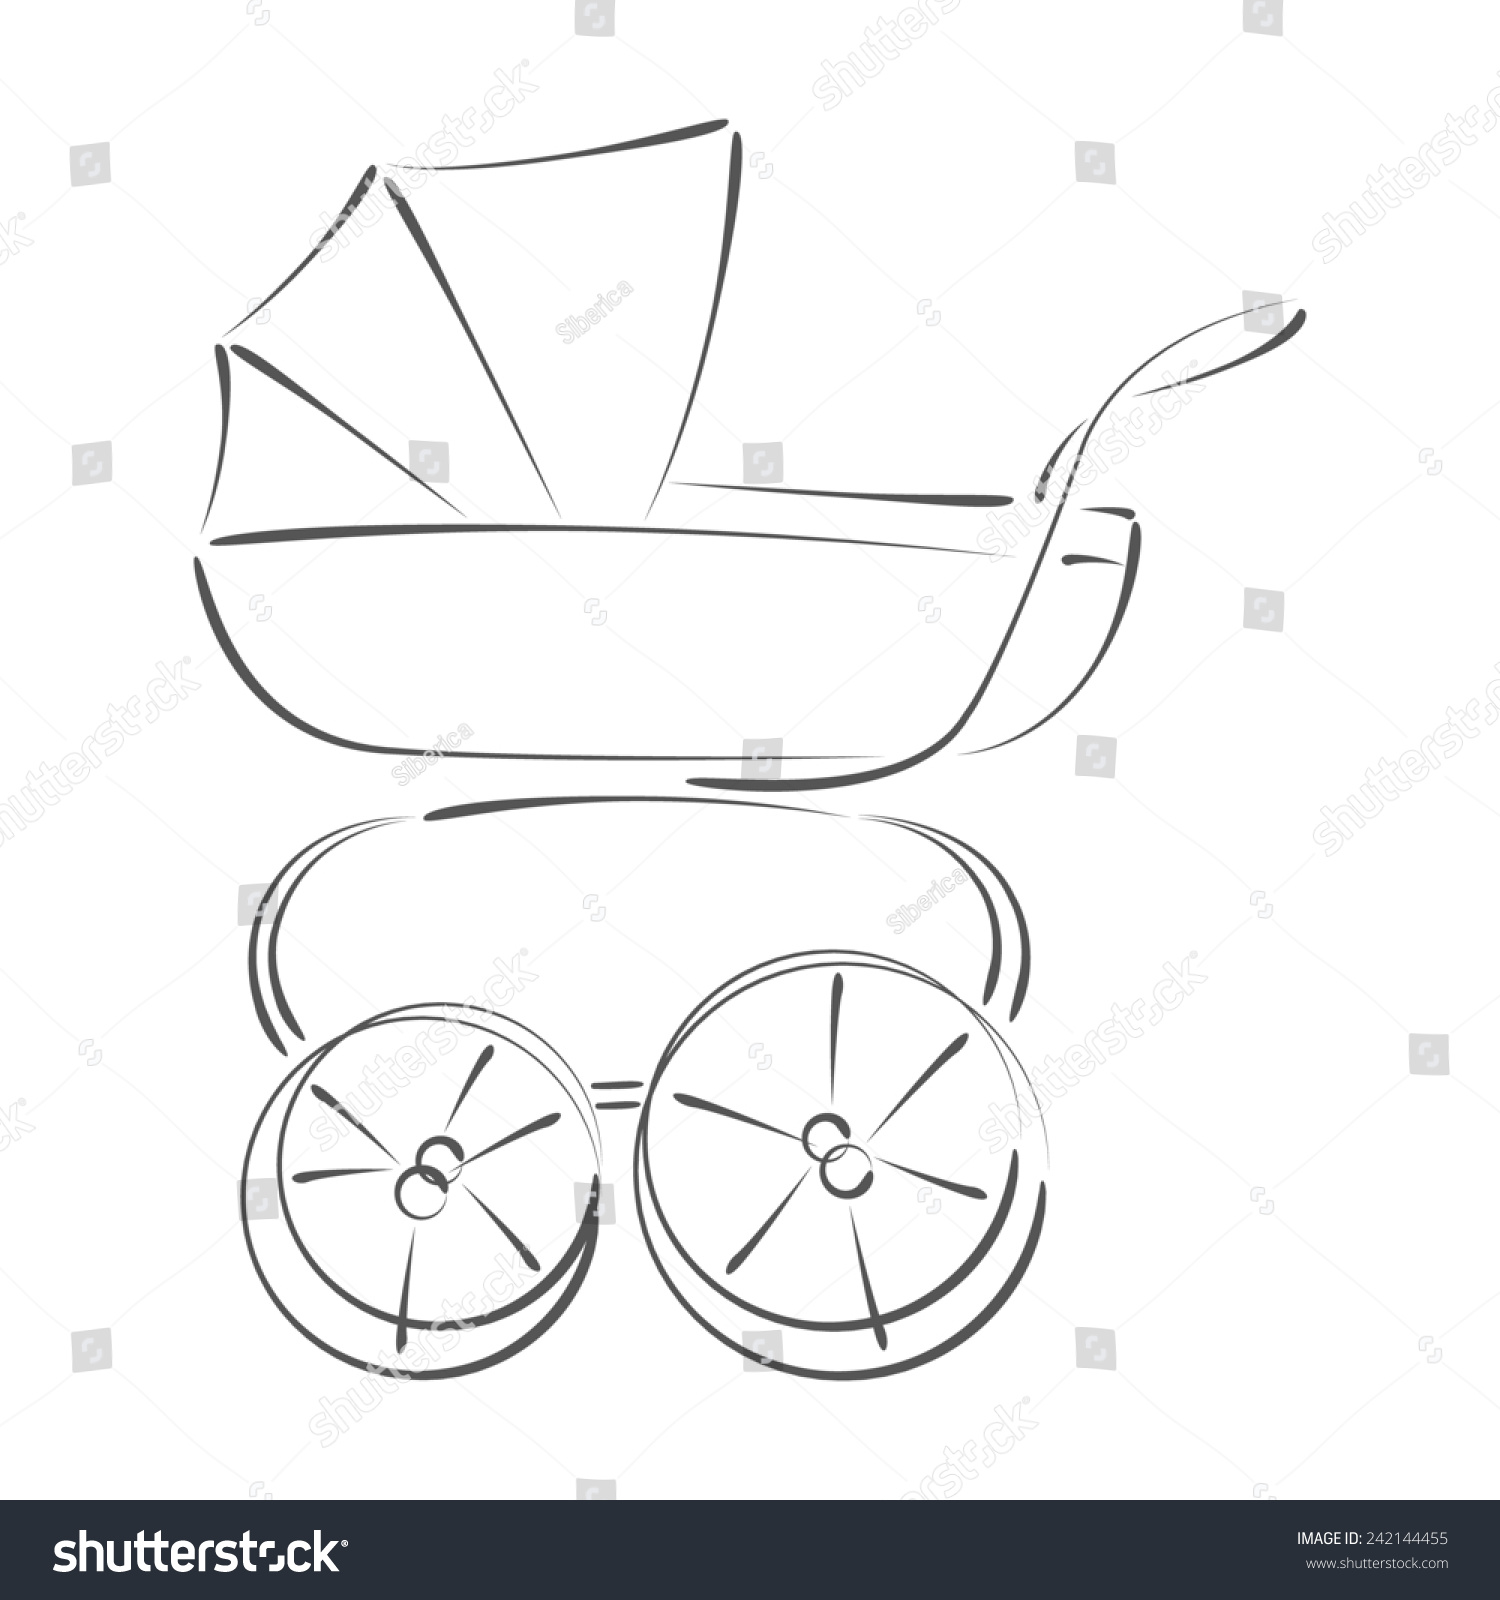 Sketched baby stroller design template label stock illustration sketched baby stroller design template for label banner postcard baby stroller raster maxwellsz